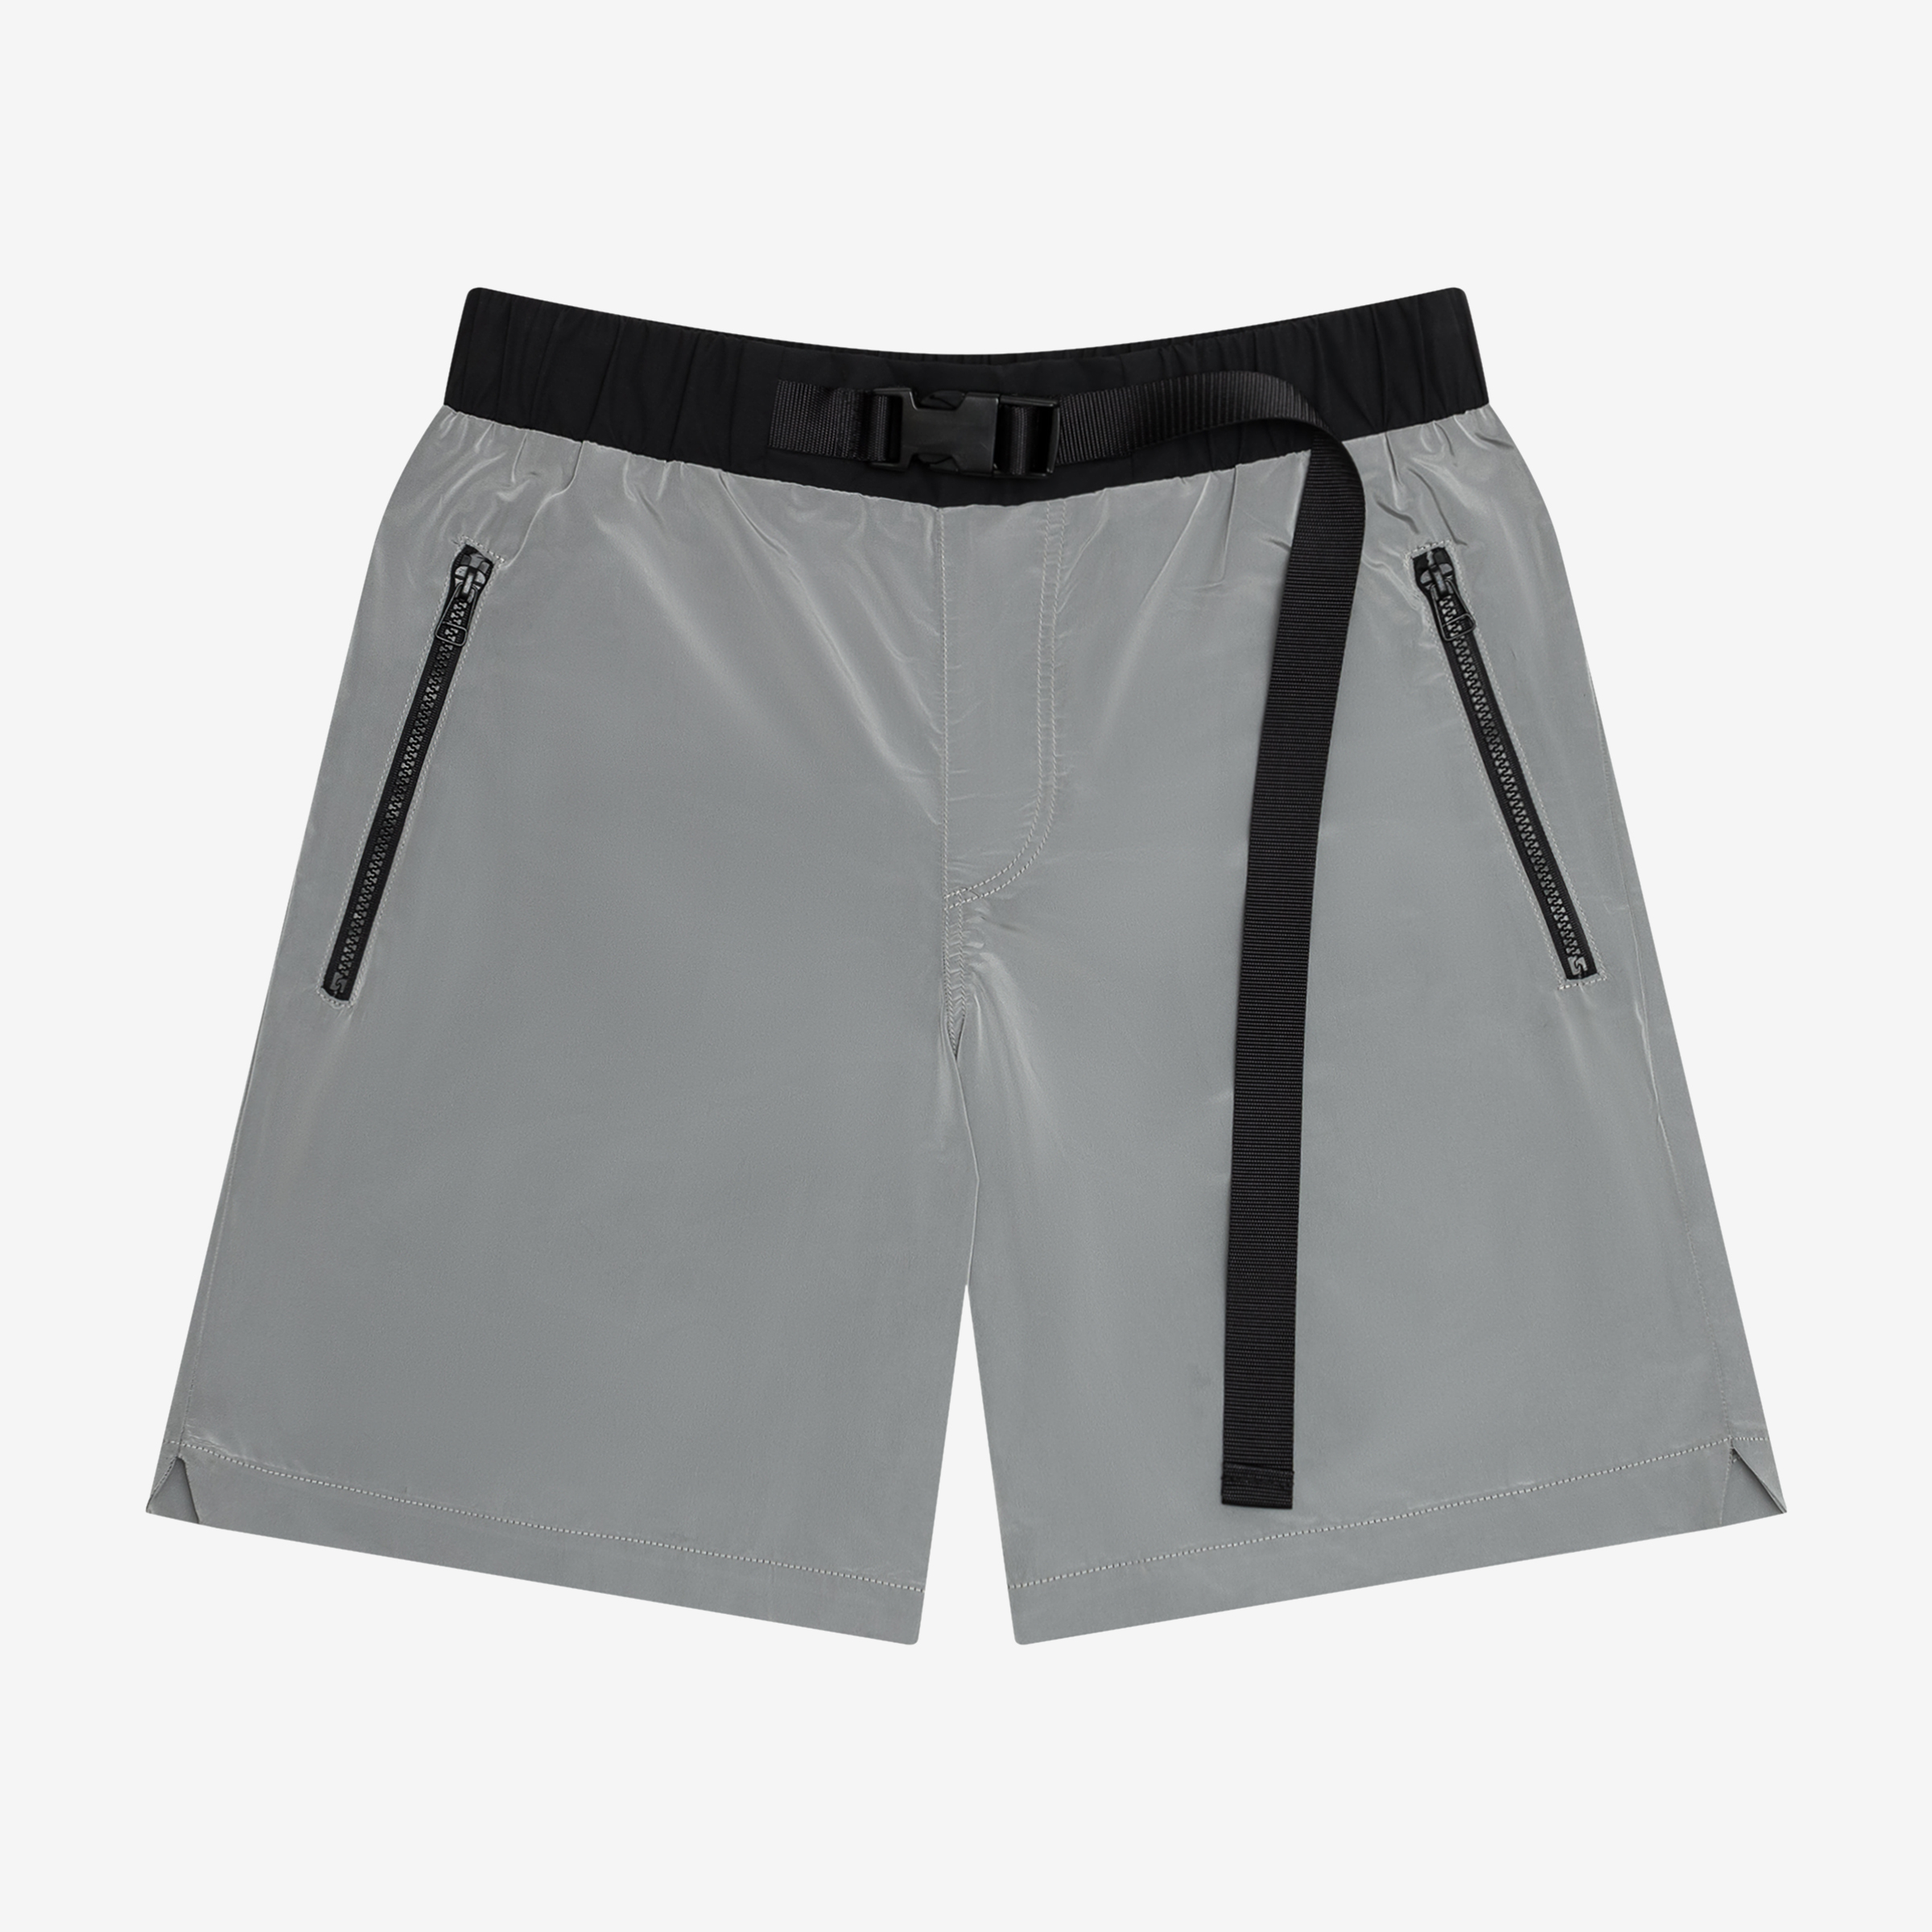 shorts product-photography